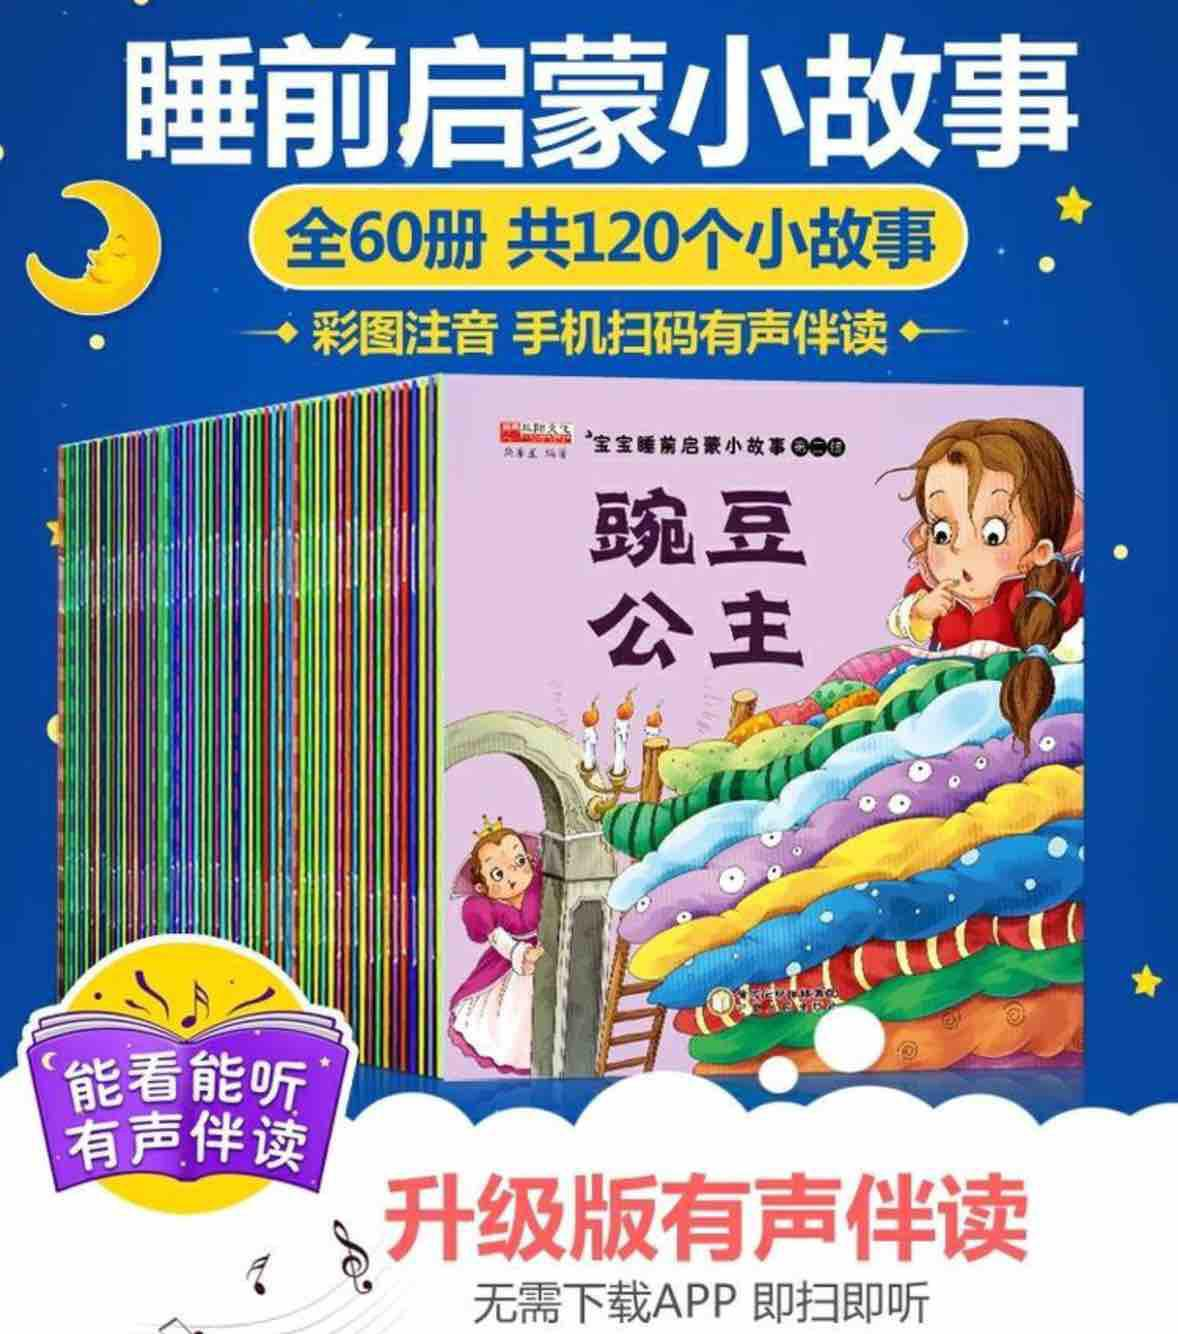 60 Audio Chinese storybooks 113 stories ( comes with free gift )